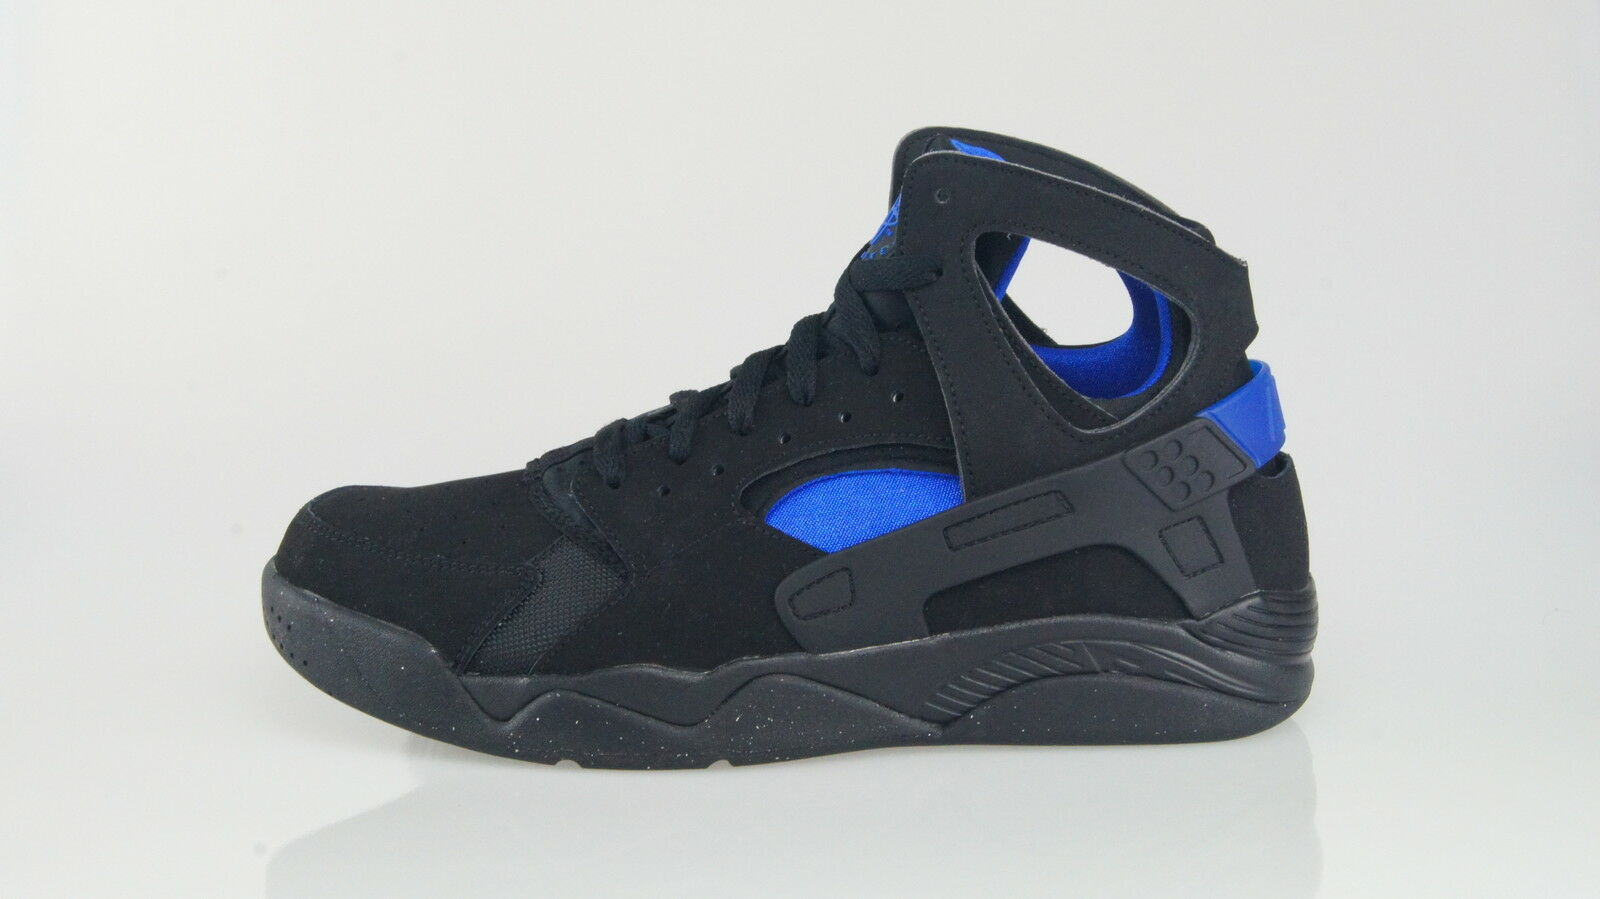 NIKE AIR FLIGHT HUARACHE Size 44 (10US)